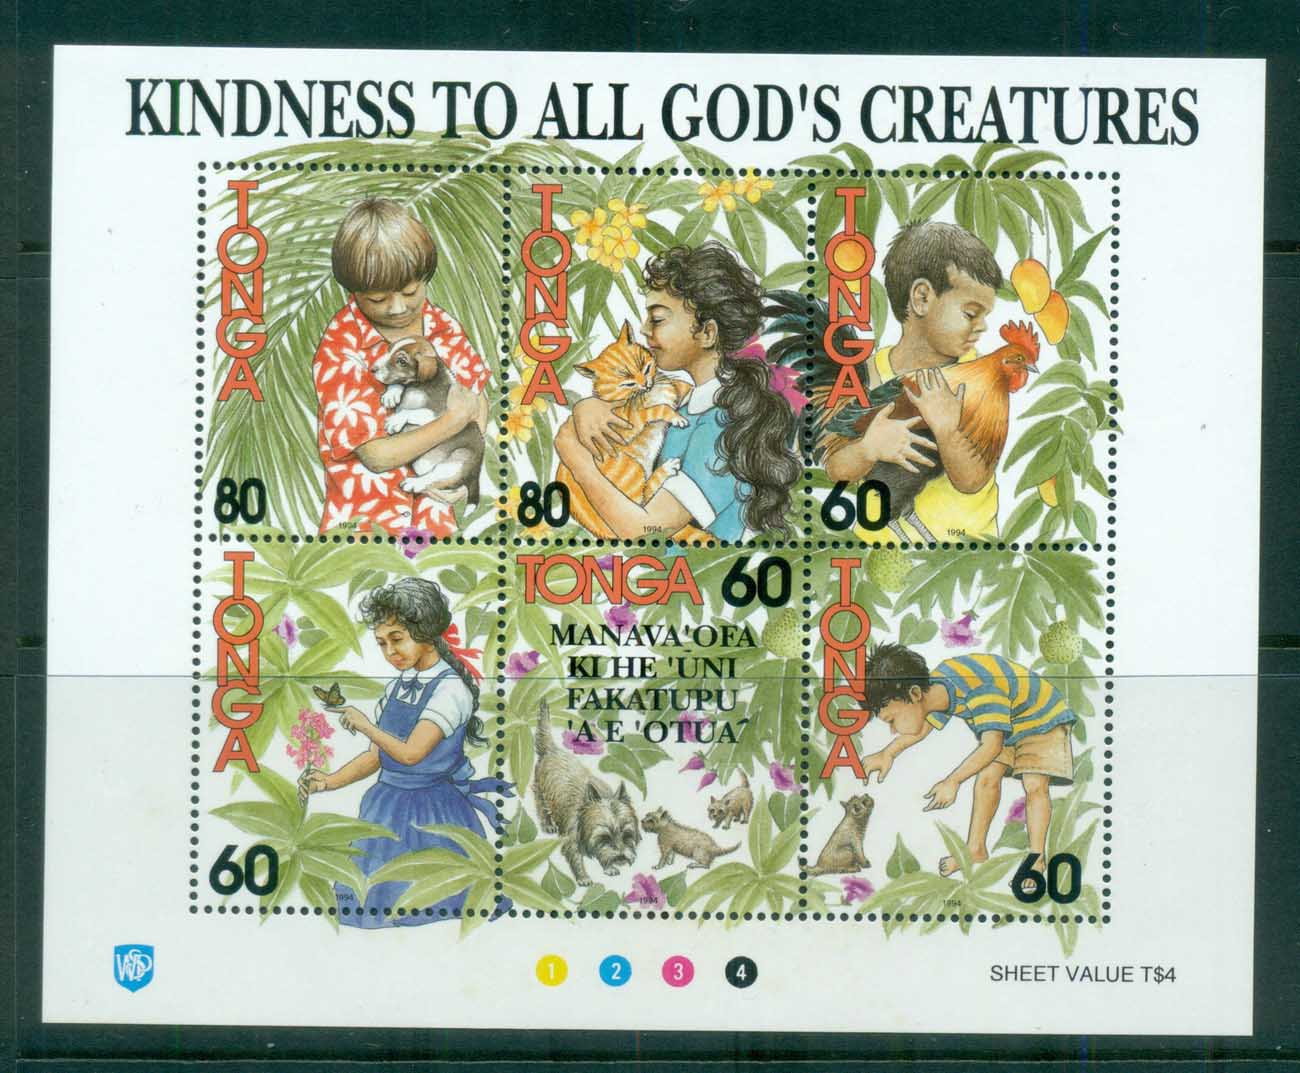 Tonga 1994 Kindness to All God's Creatures MS MUH